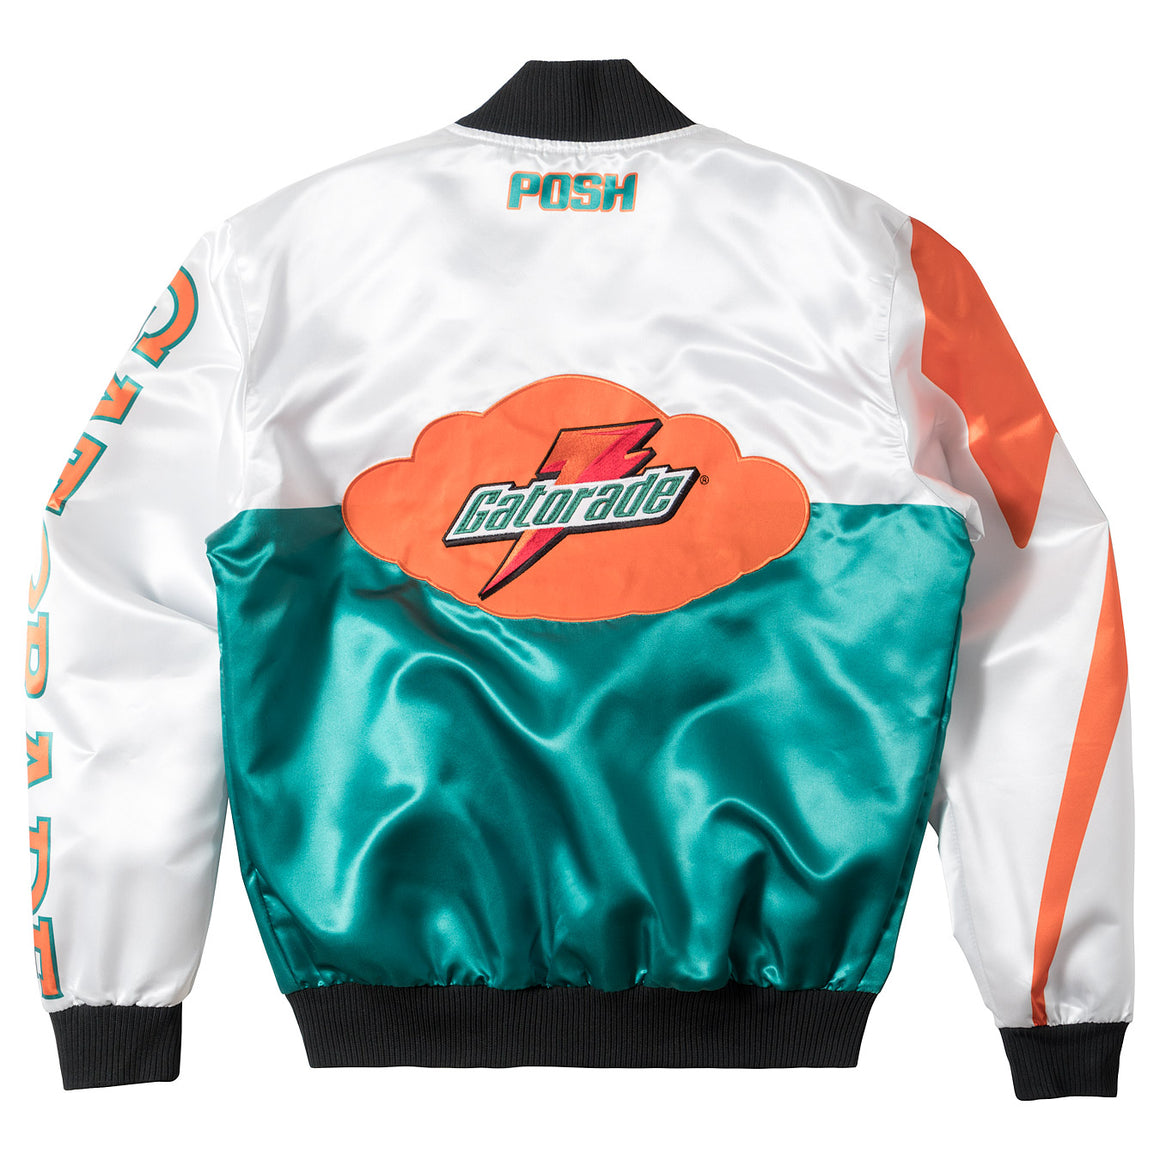 "Posh ""GatoRacing"" Two Tone Satin Racing Jacket White Green - Trends Society"